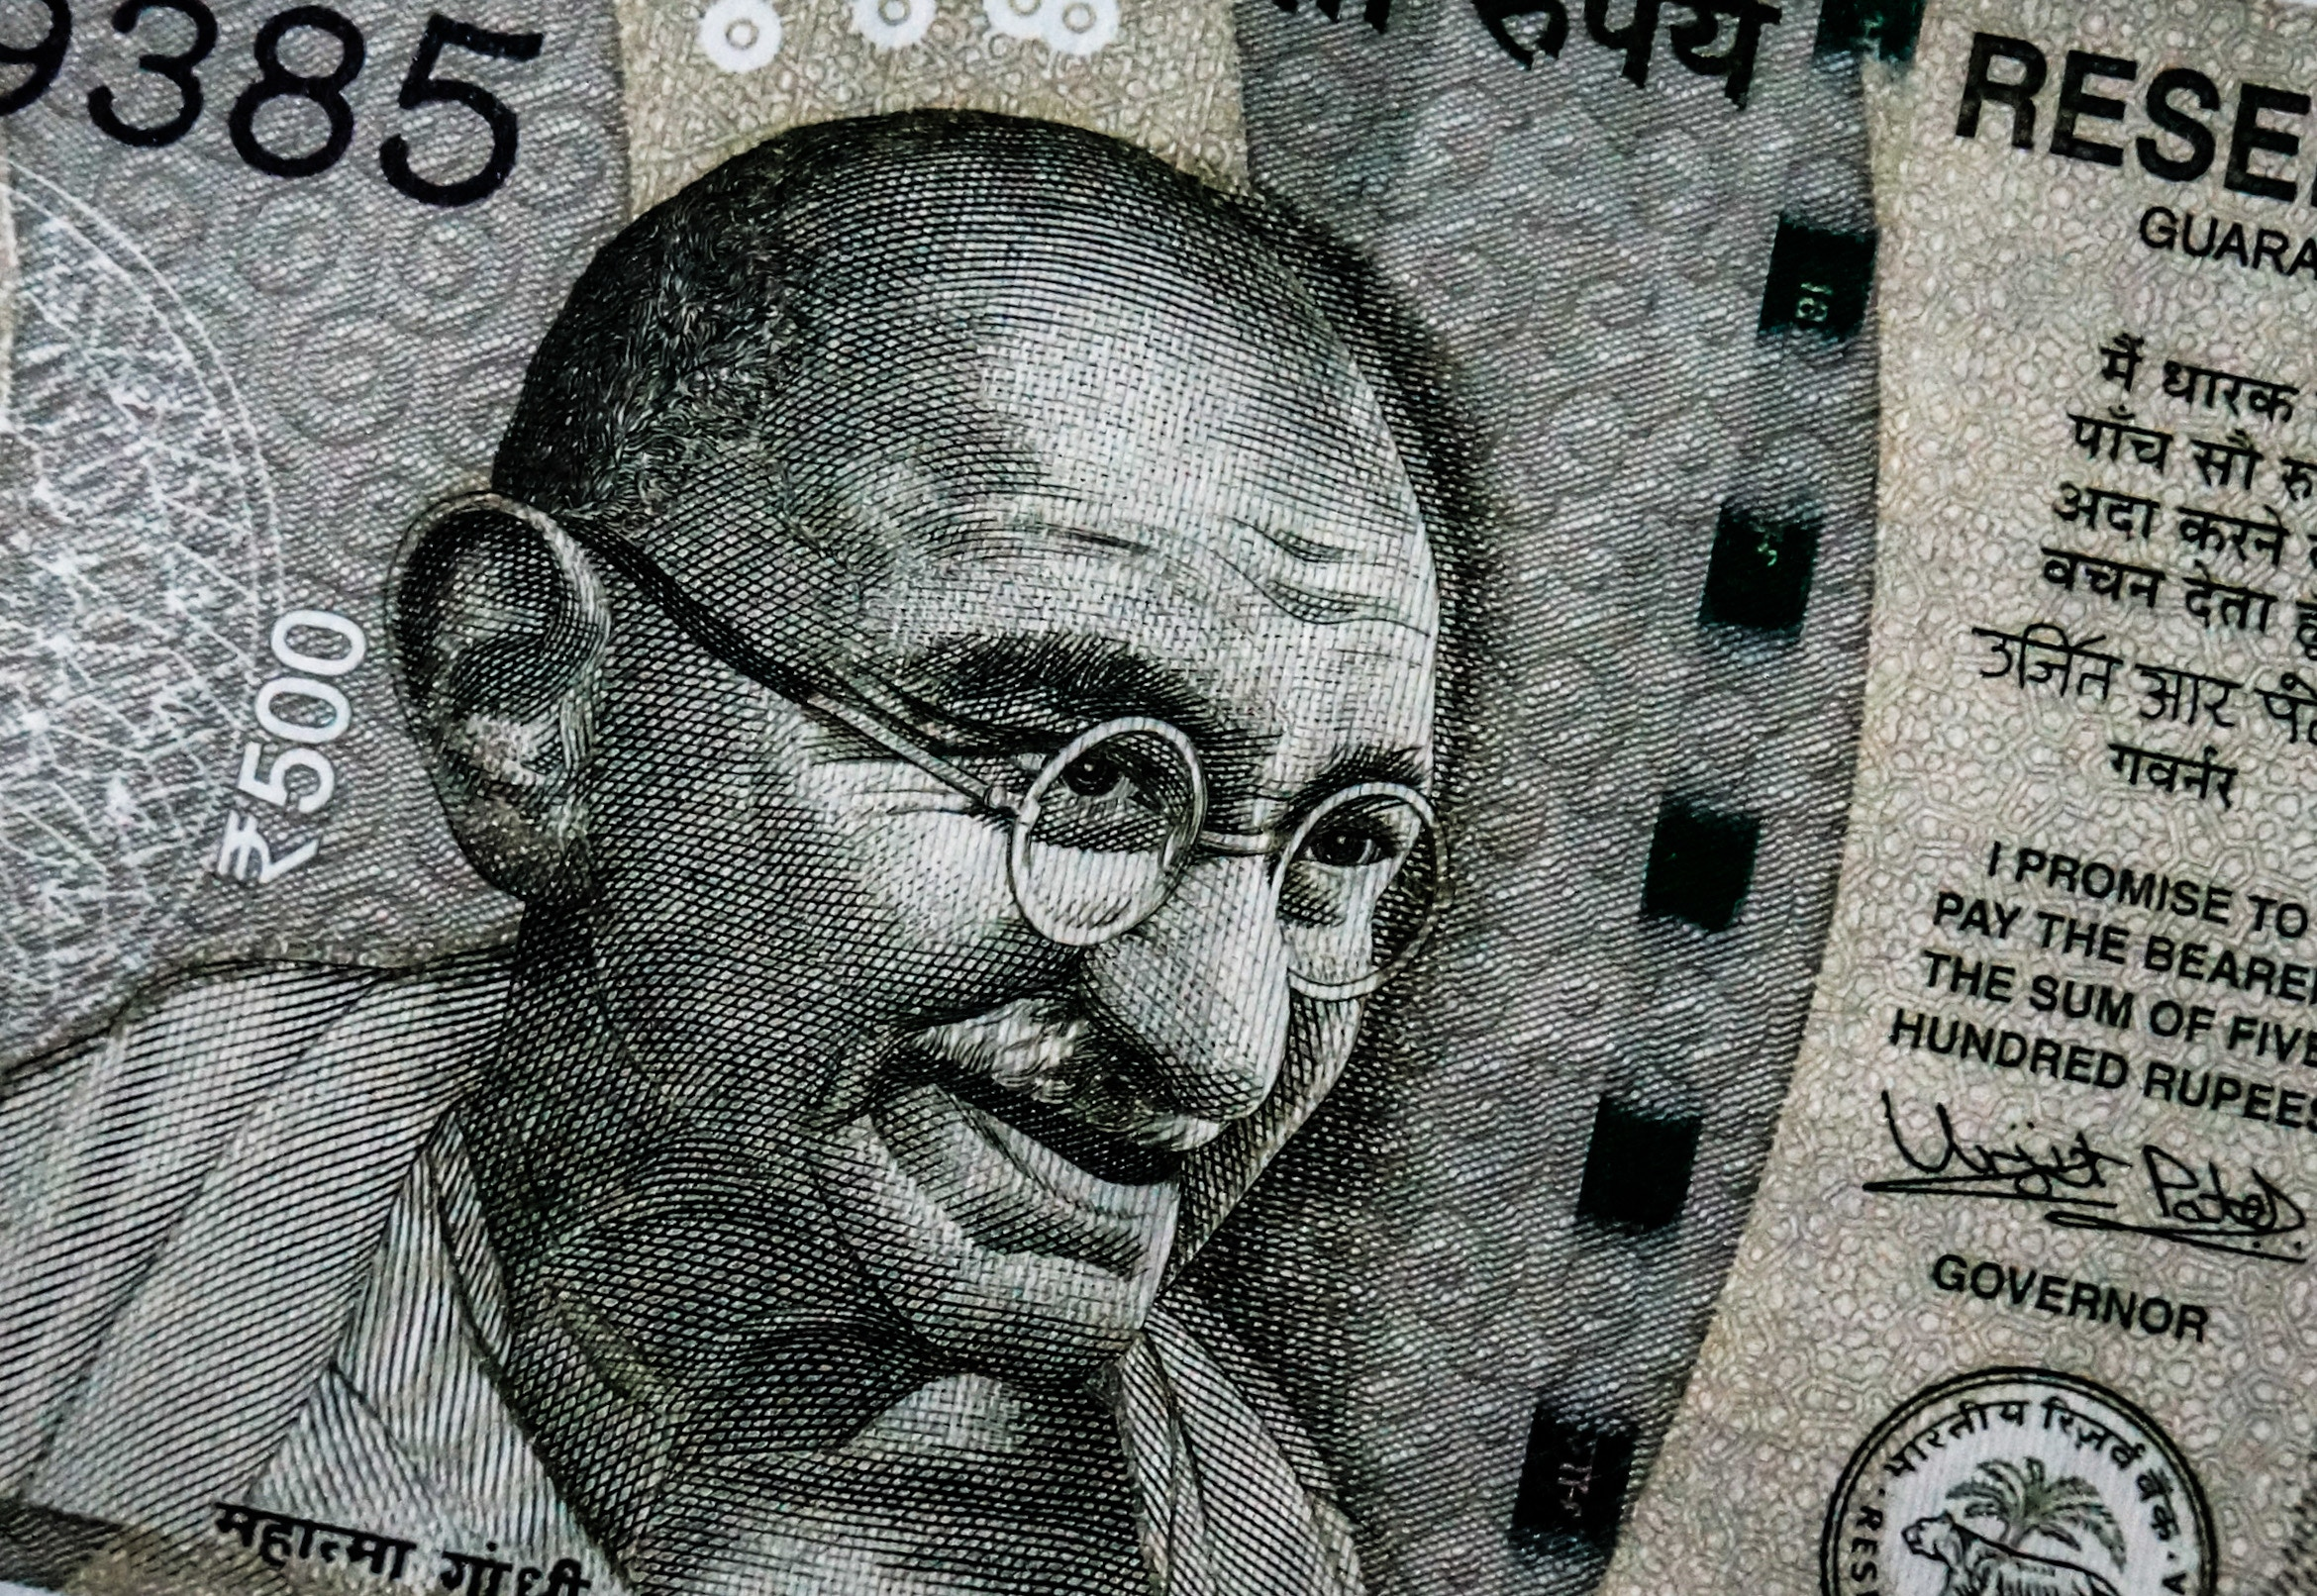 Blog_Post_13-Gandhi.jpg